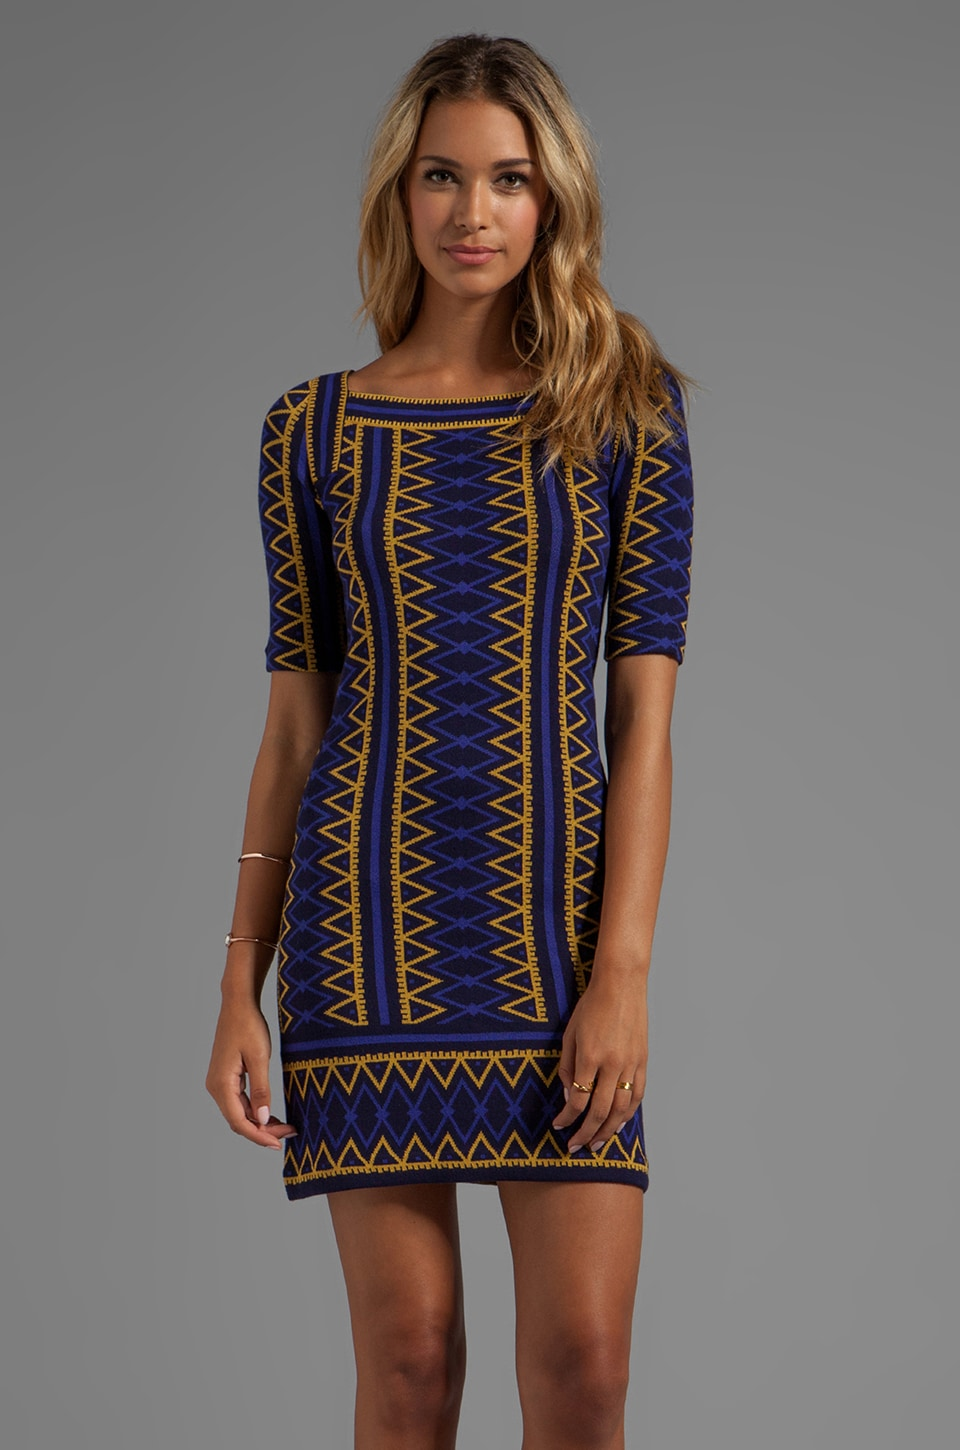 Trina Turk Milies Sweater Dress in Maple Gold